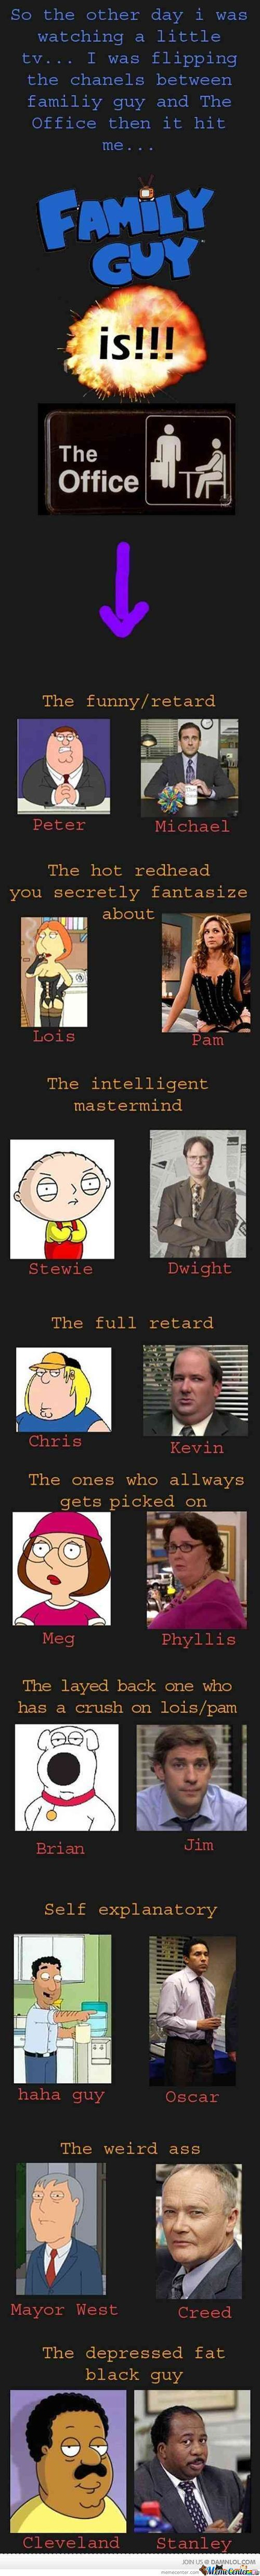 Family Guy/the Office